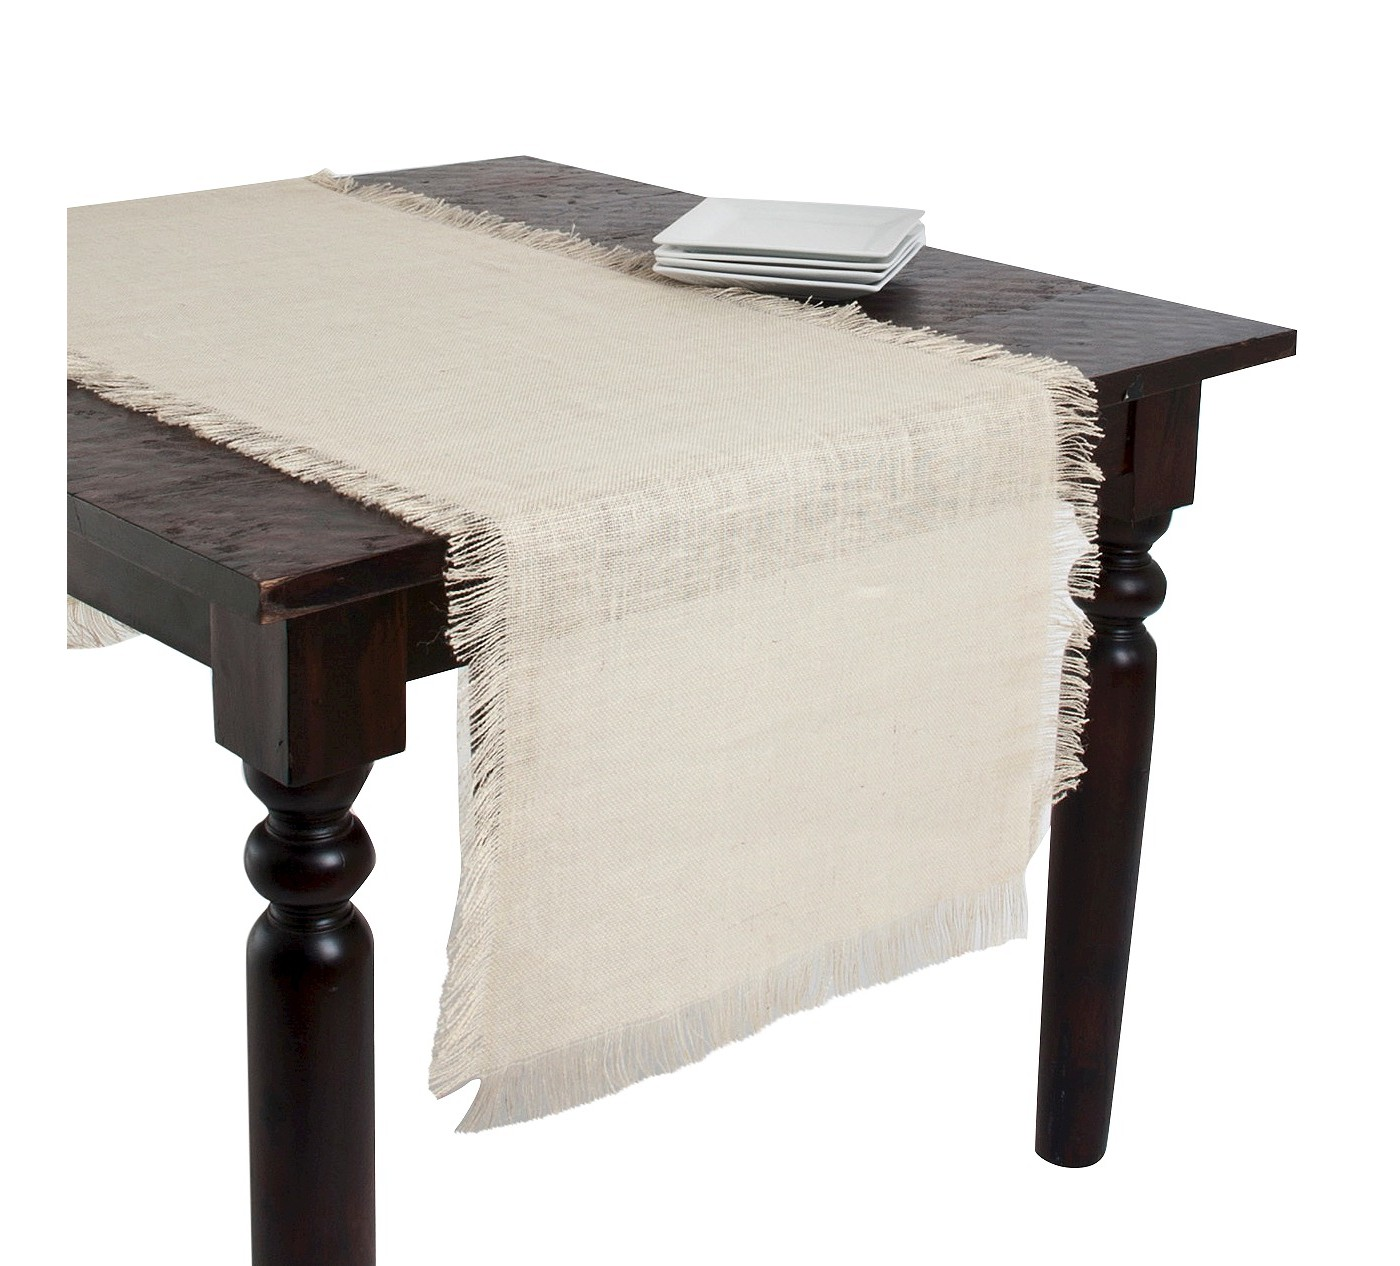 Fringed Jute Table Runner - image 1 of 1